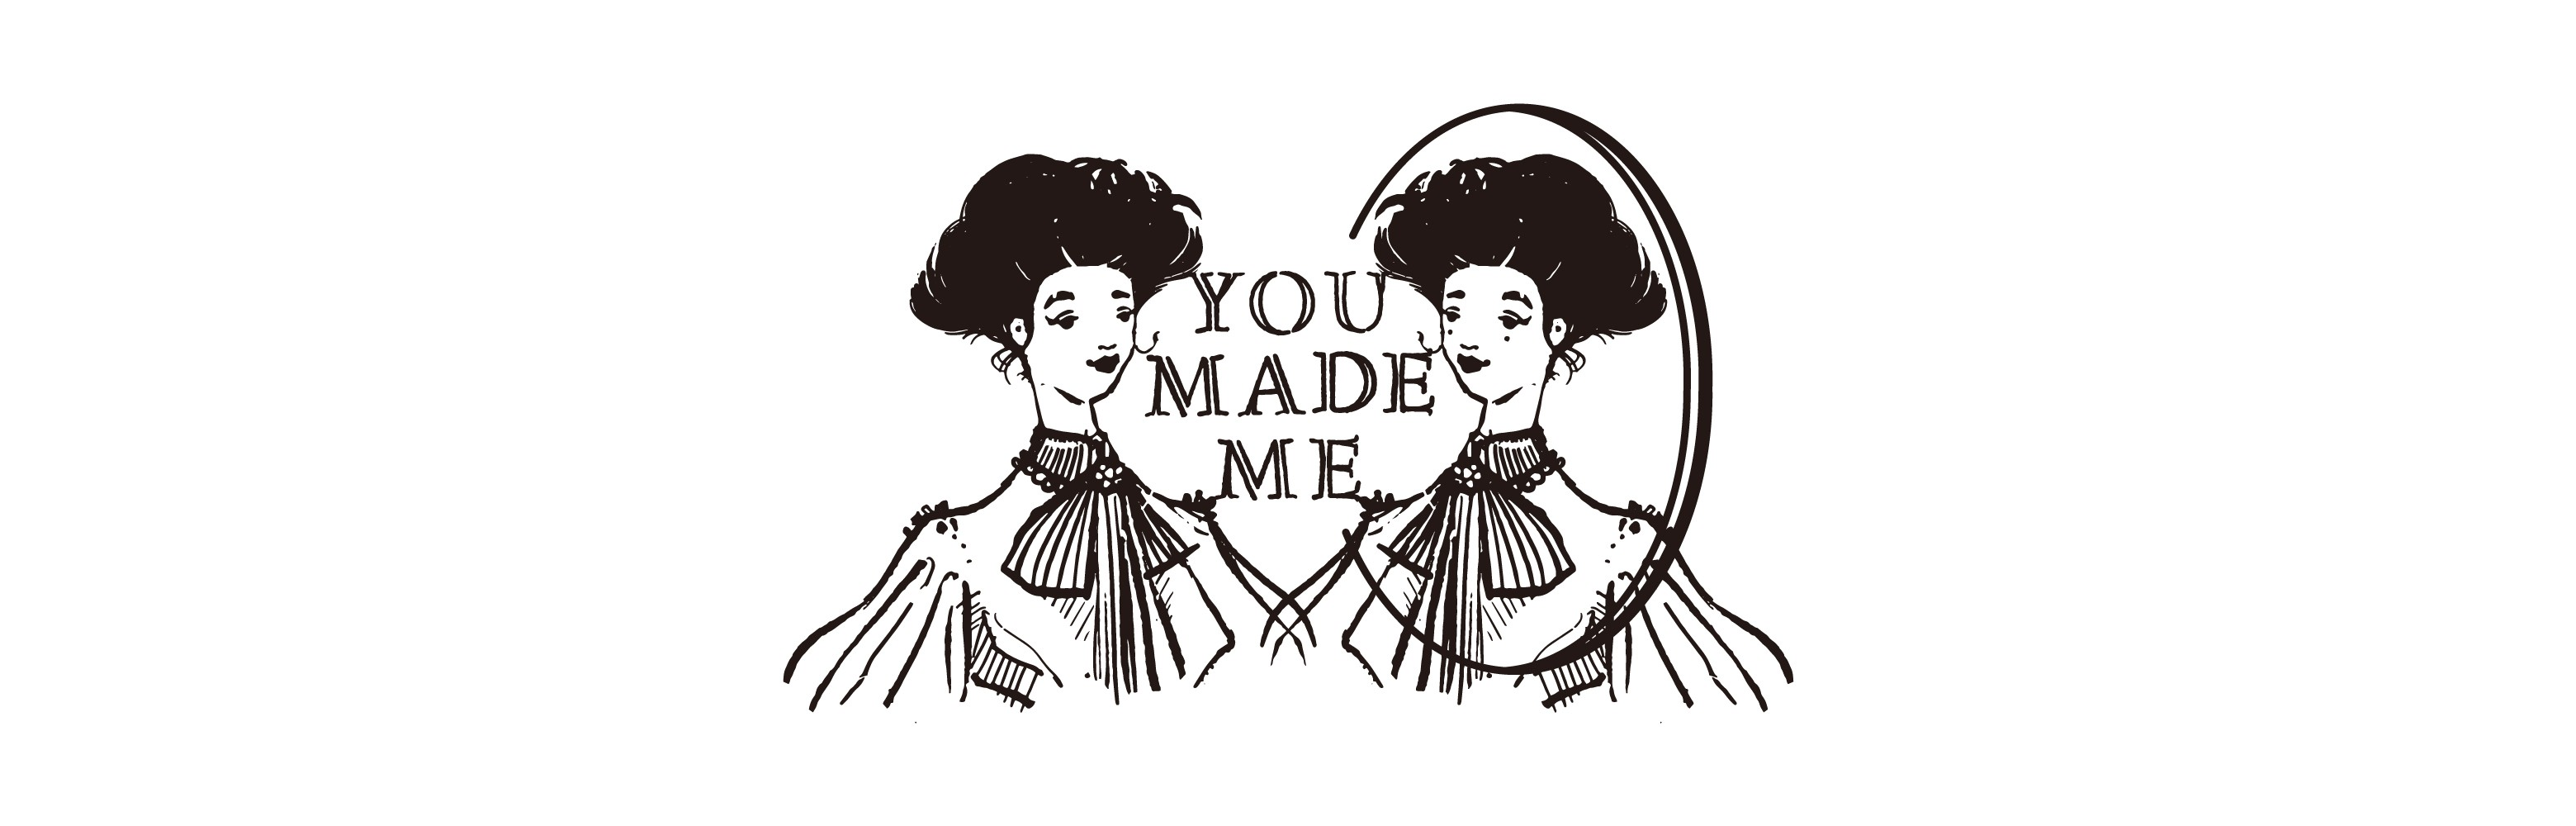 「you made me」の想い